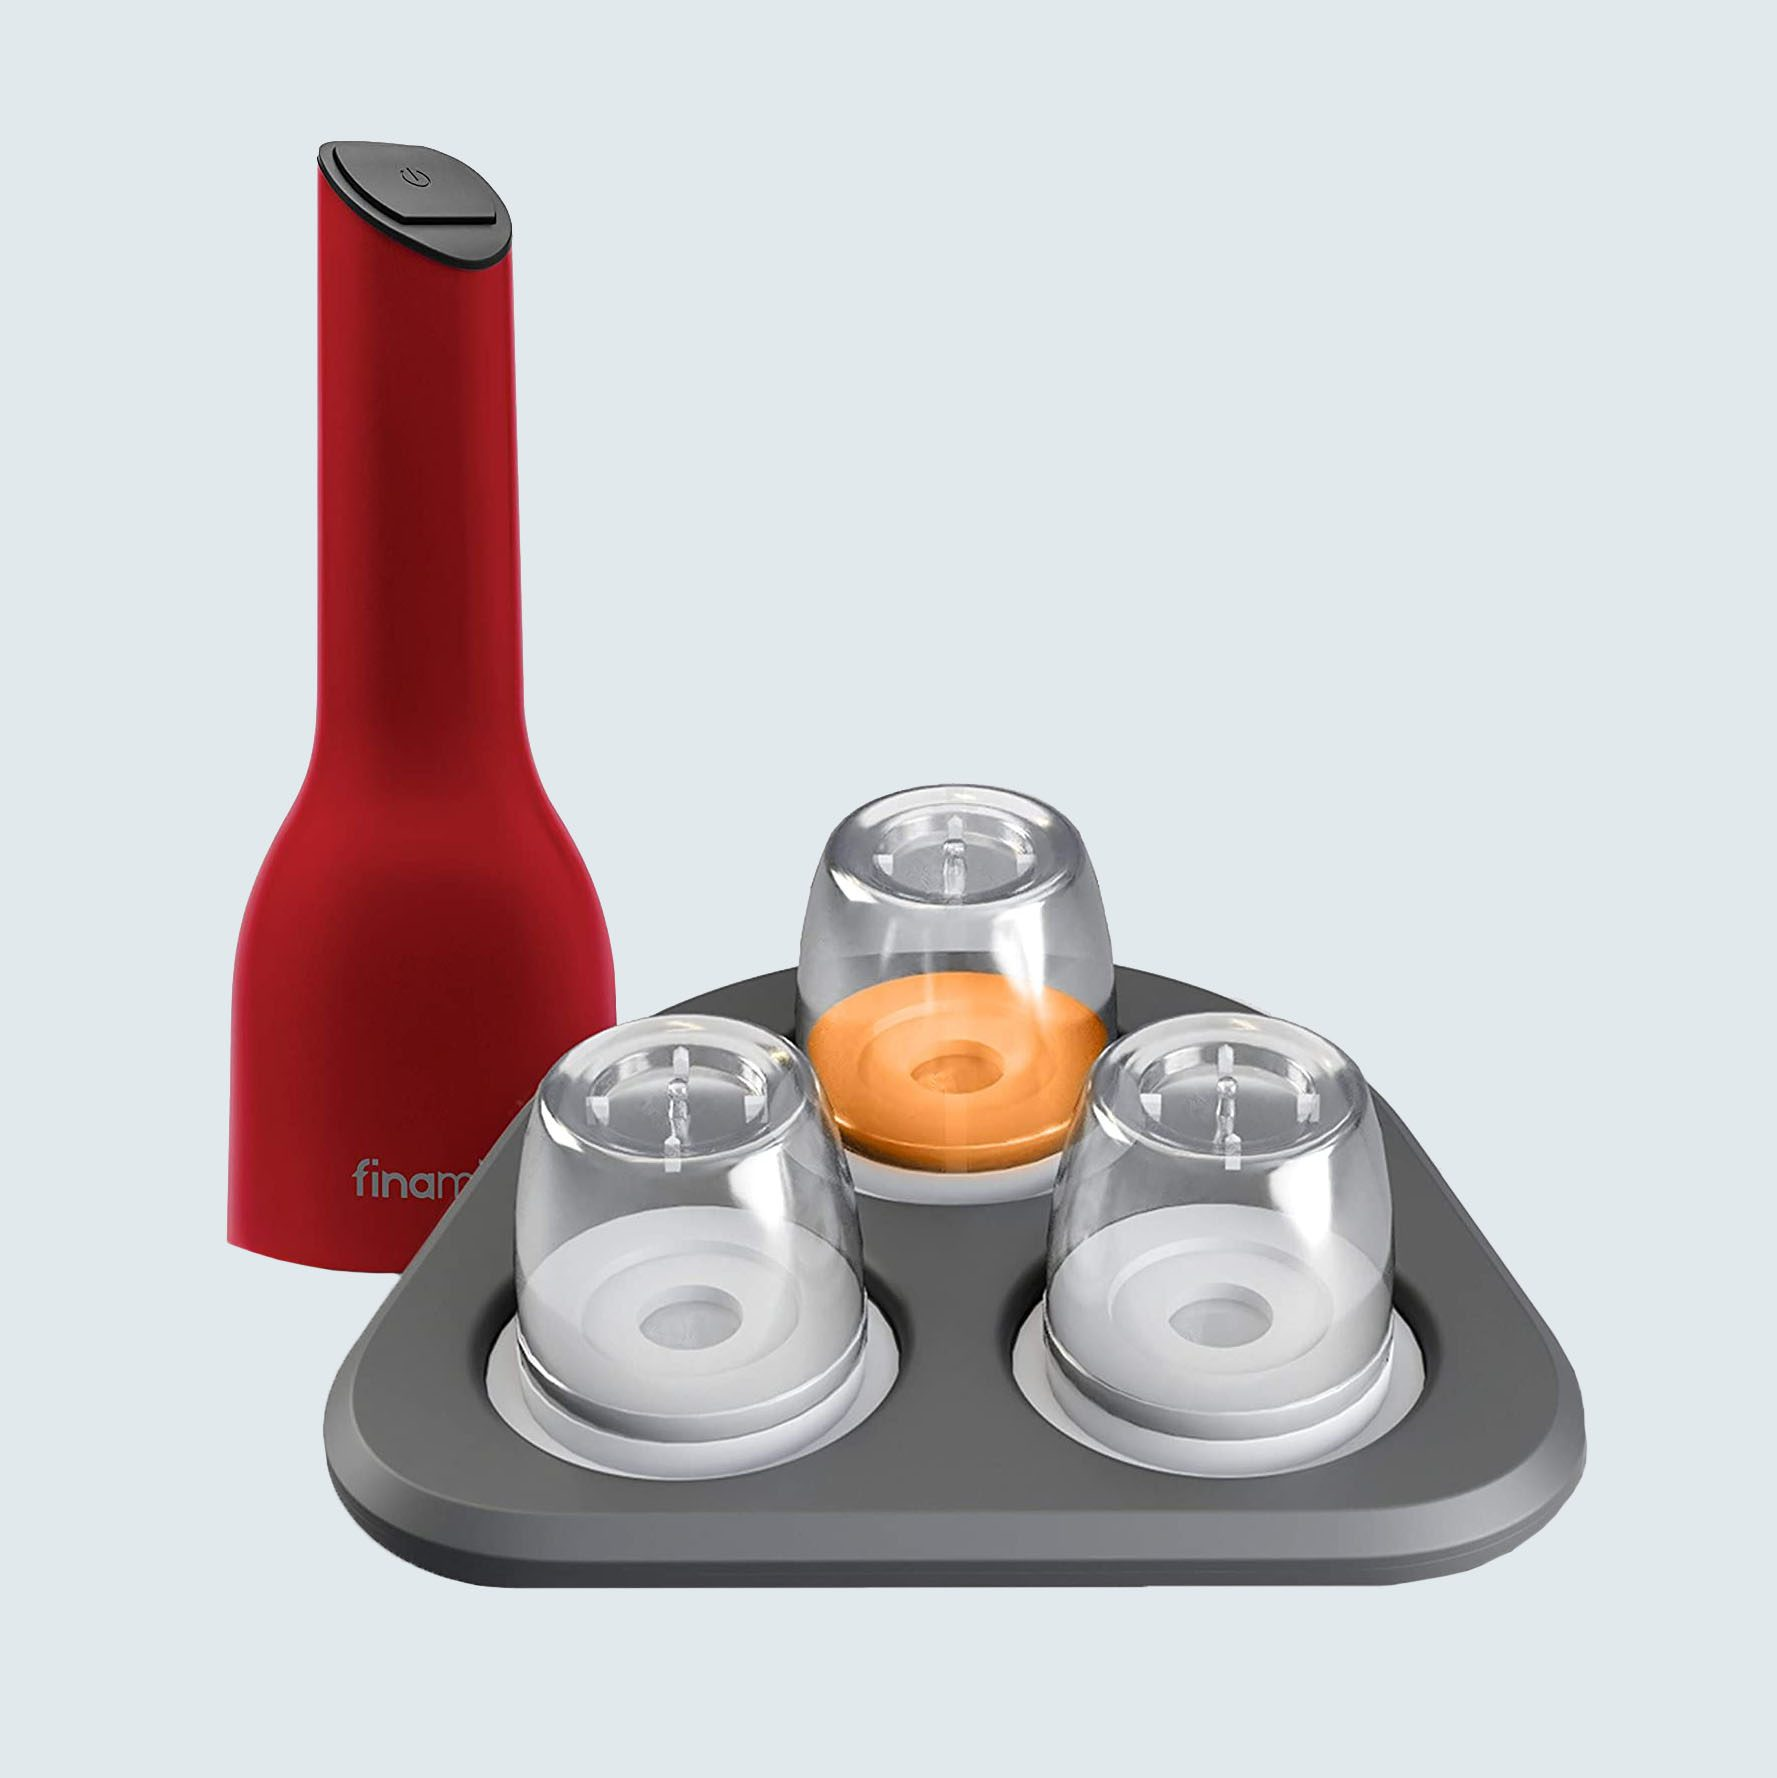 FinaMill battery-operated spice grinder gift pack